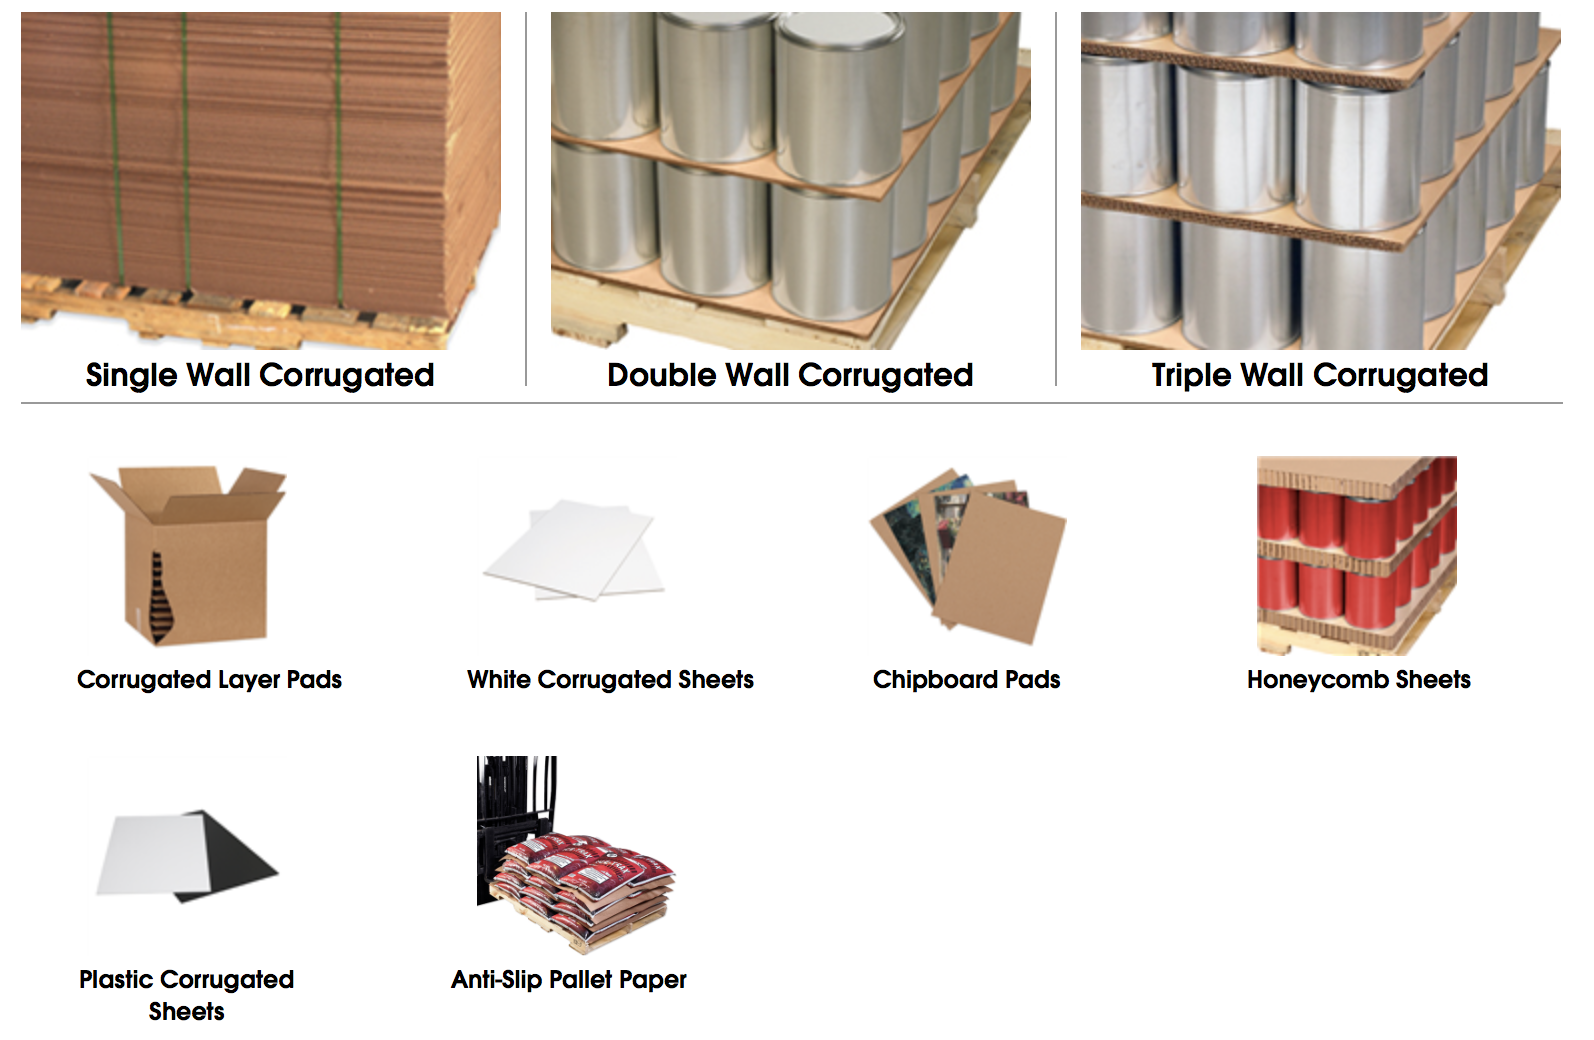 Corrugated sheets & layer pads - Click image to order